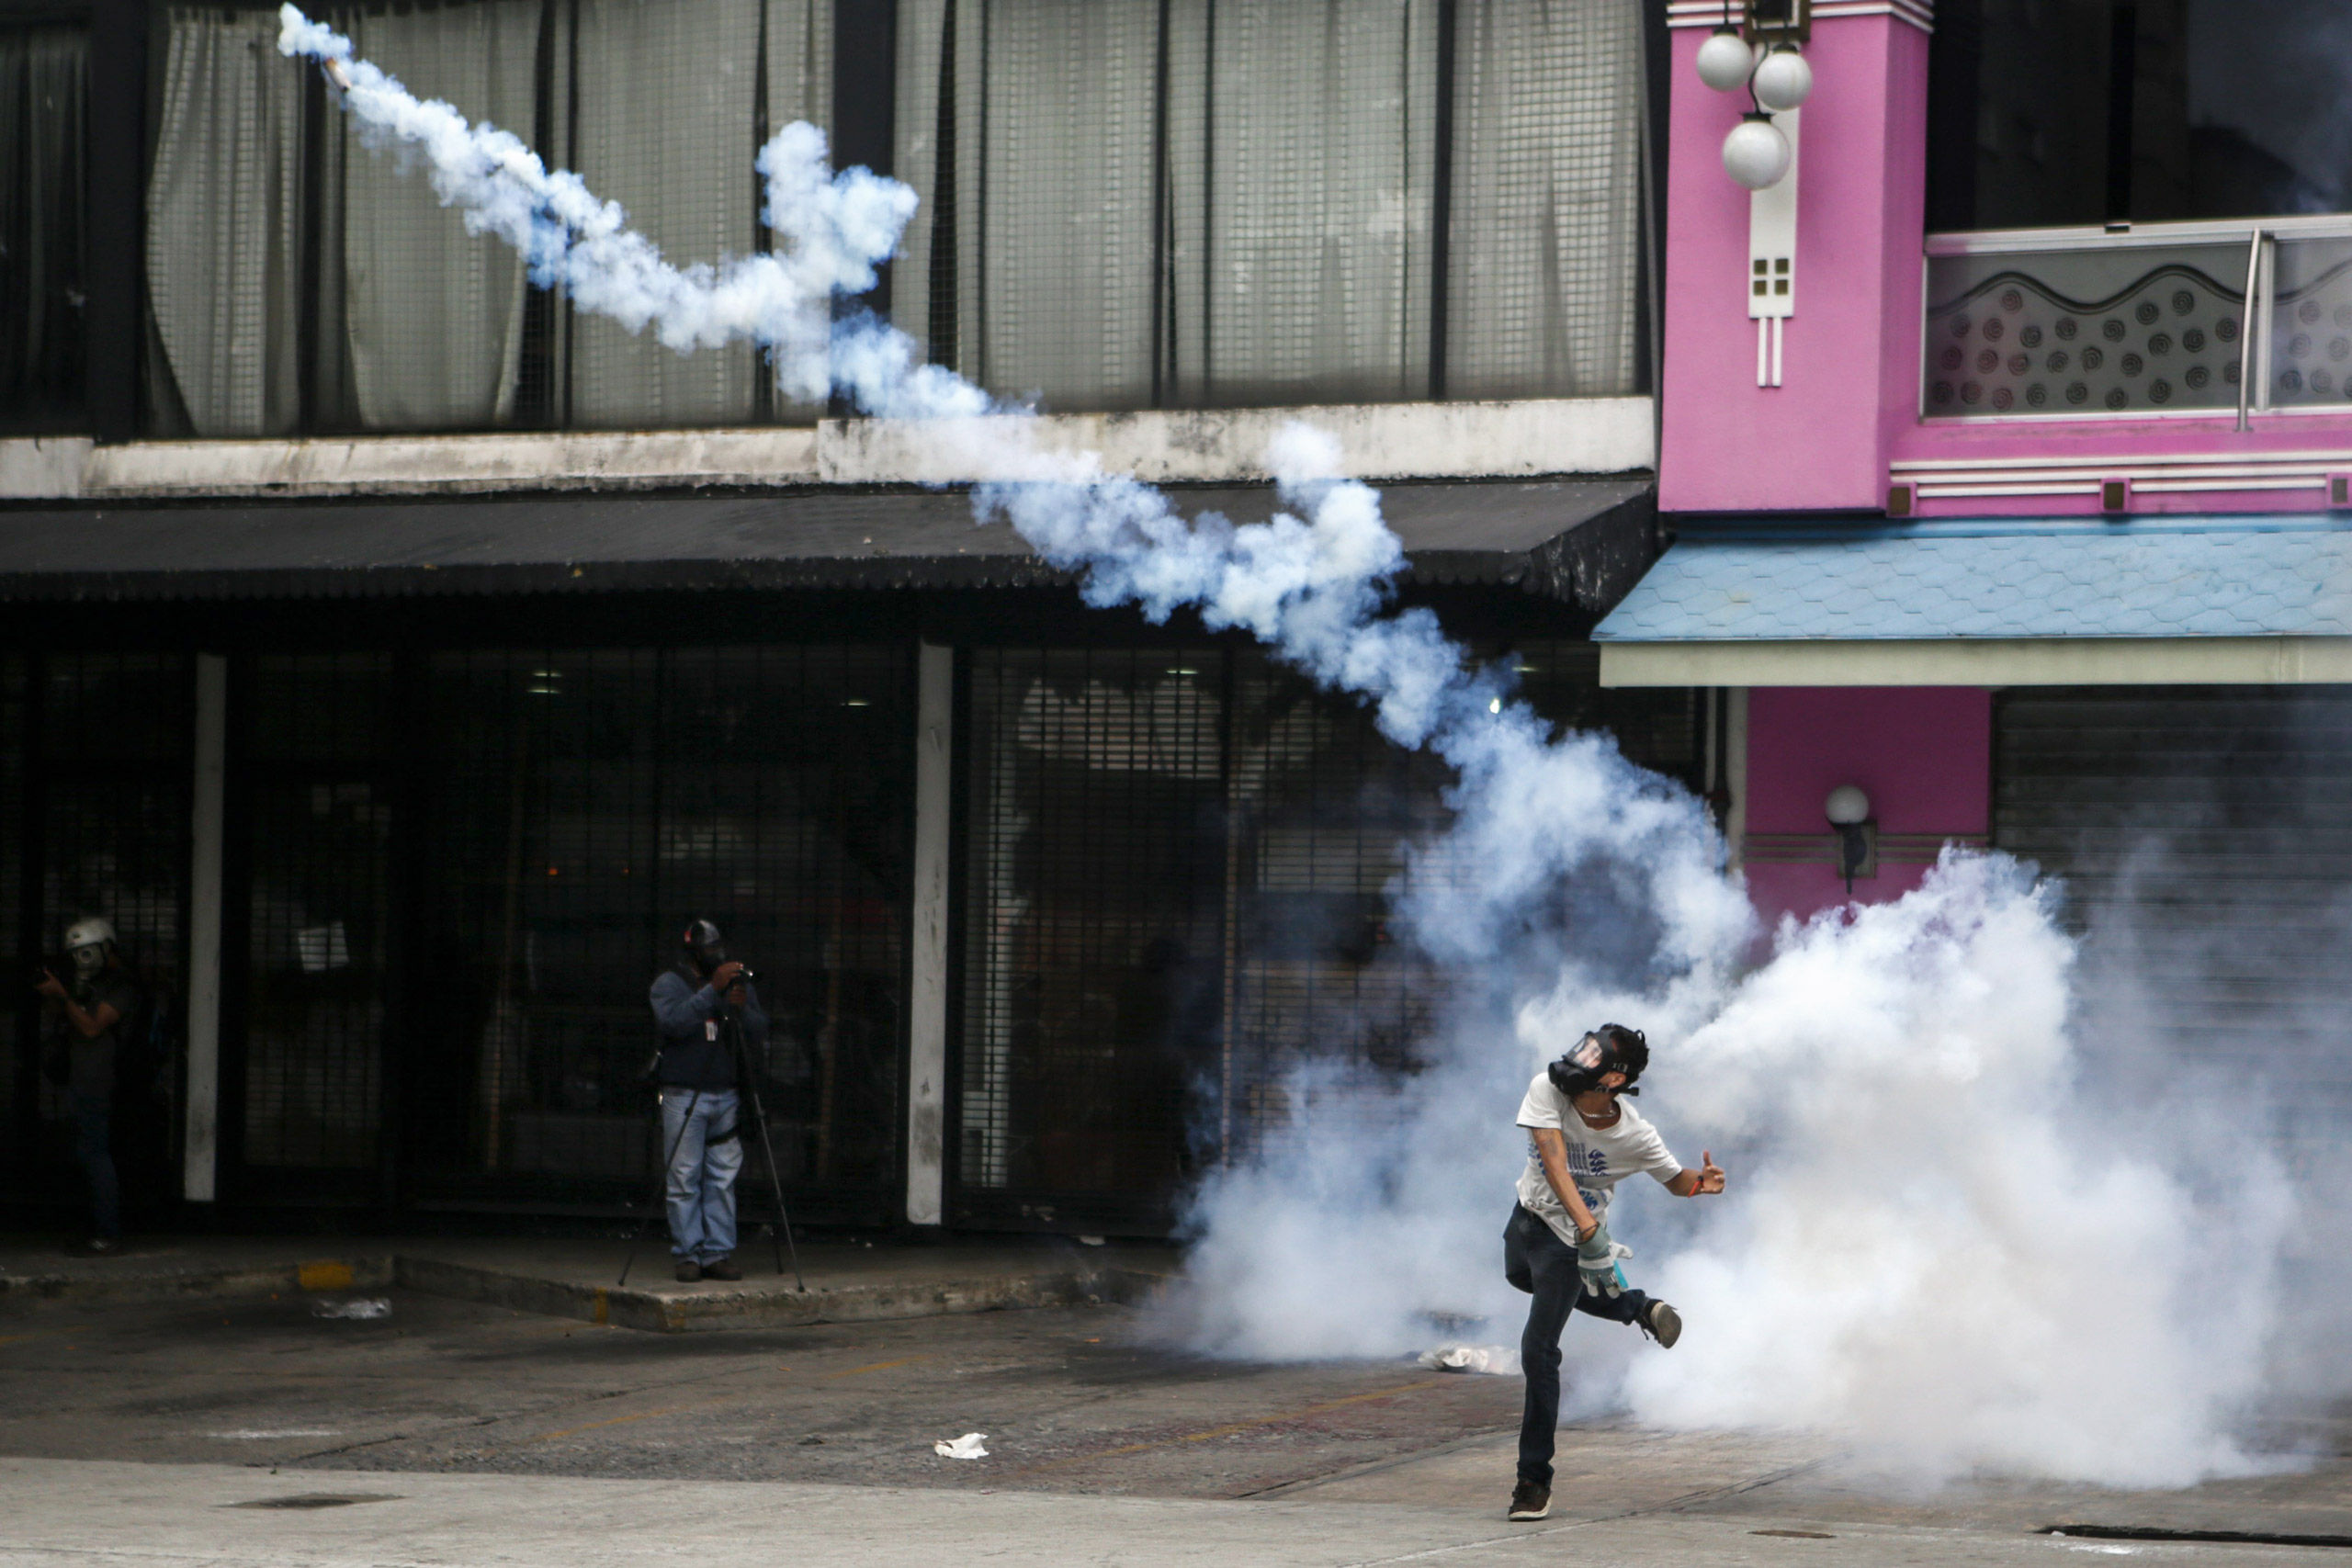 A protester in Caracas rioted against the Maduro government in April